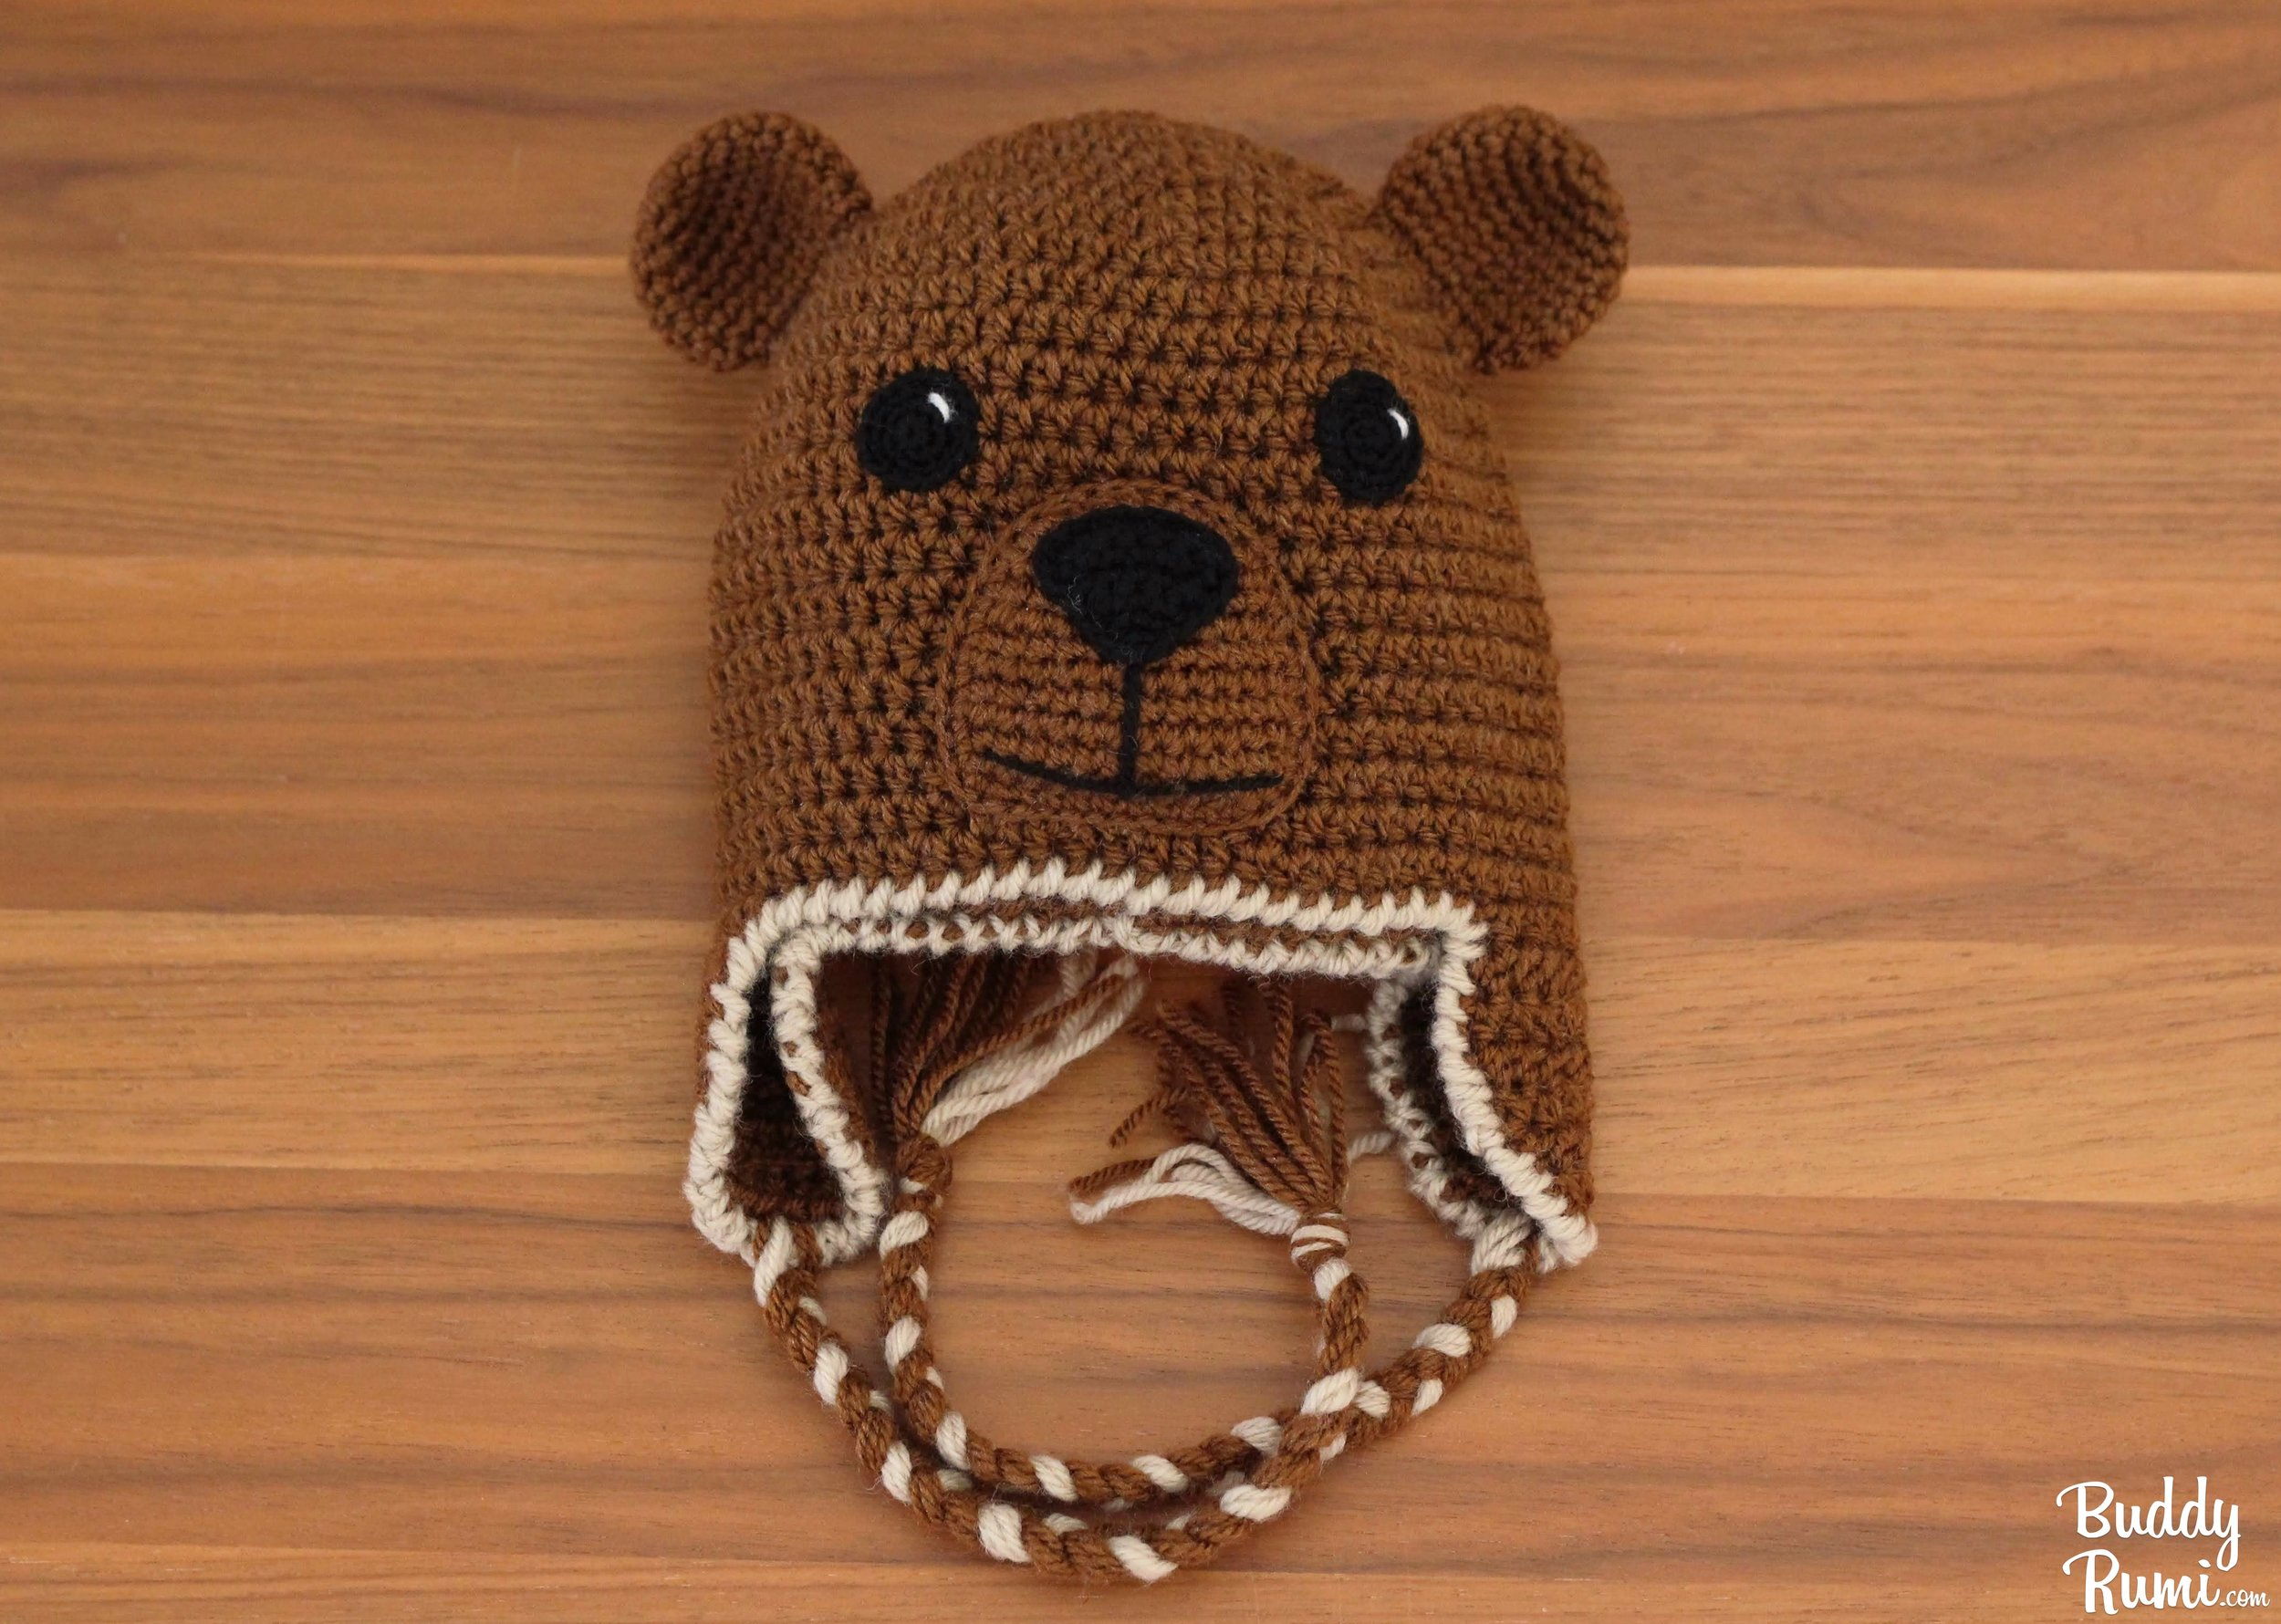 Bear crochet hat with braids